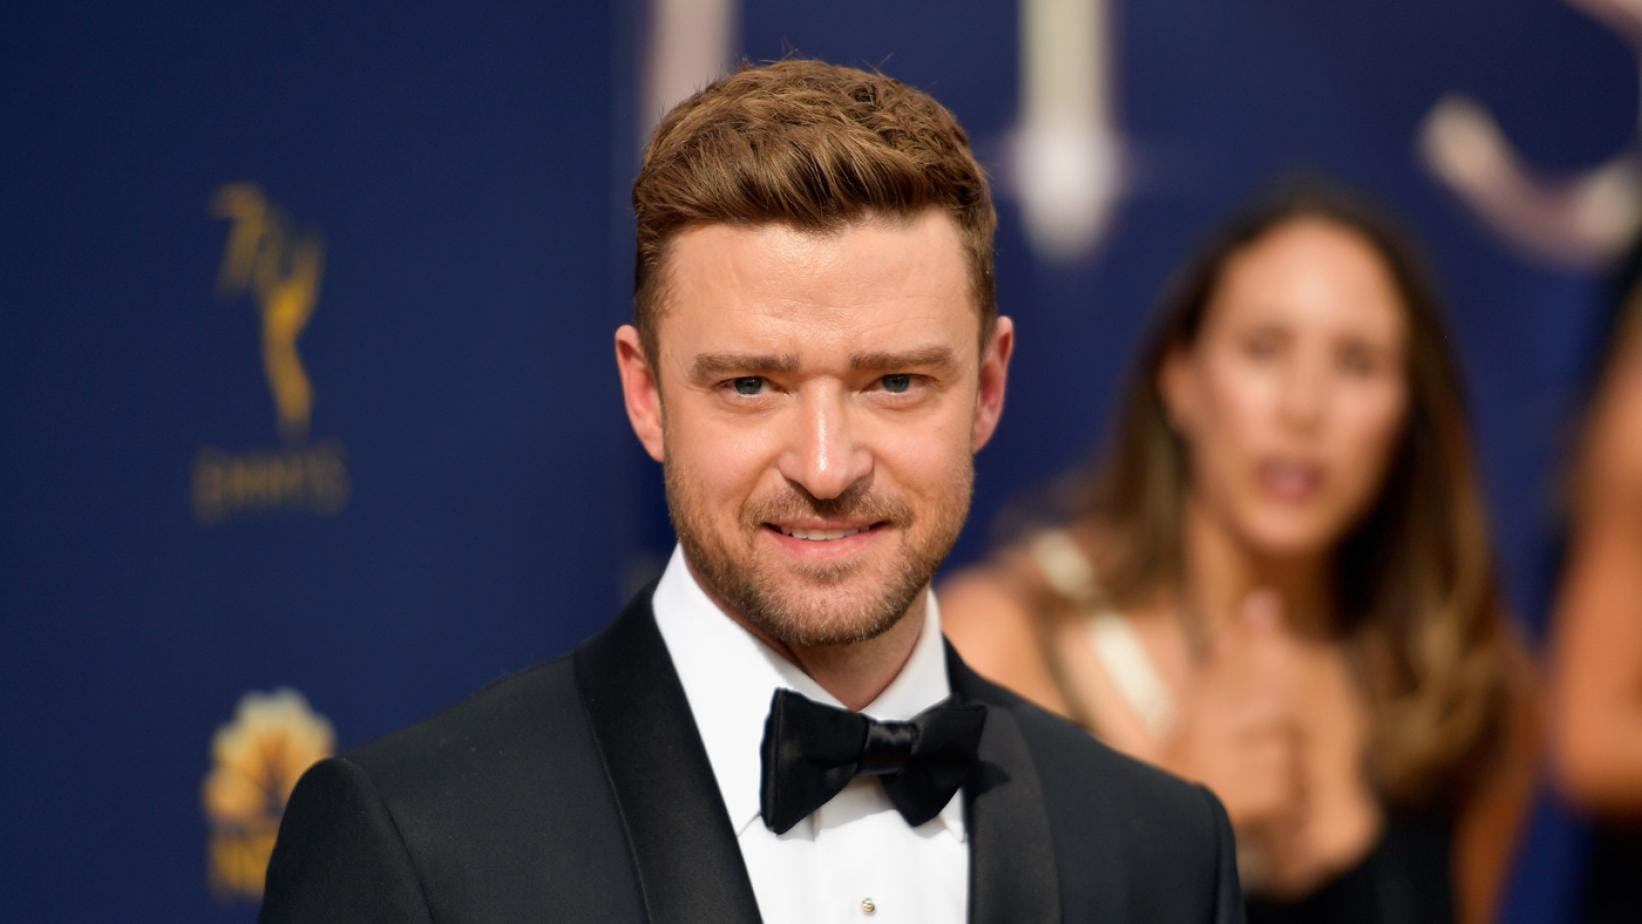 13 FLY FACTS ABOUT JUSTIN TIMBERLAKE